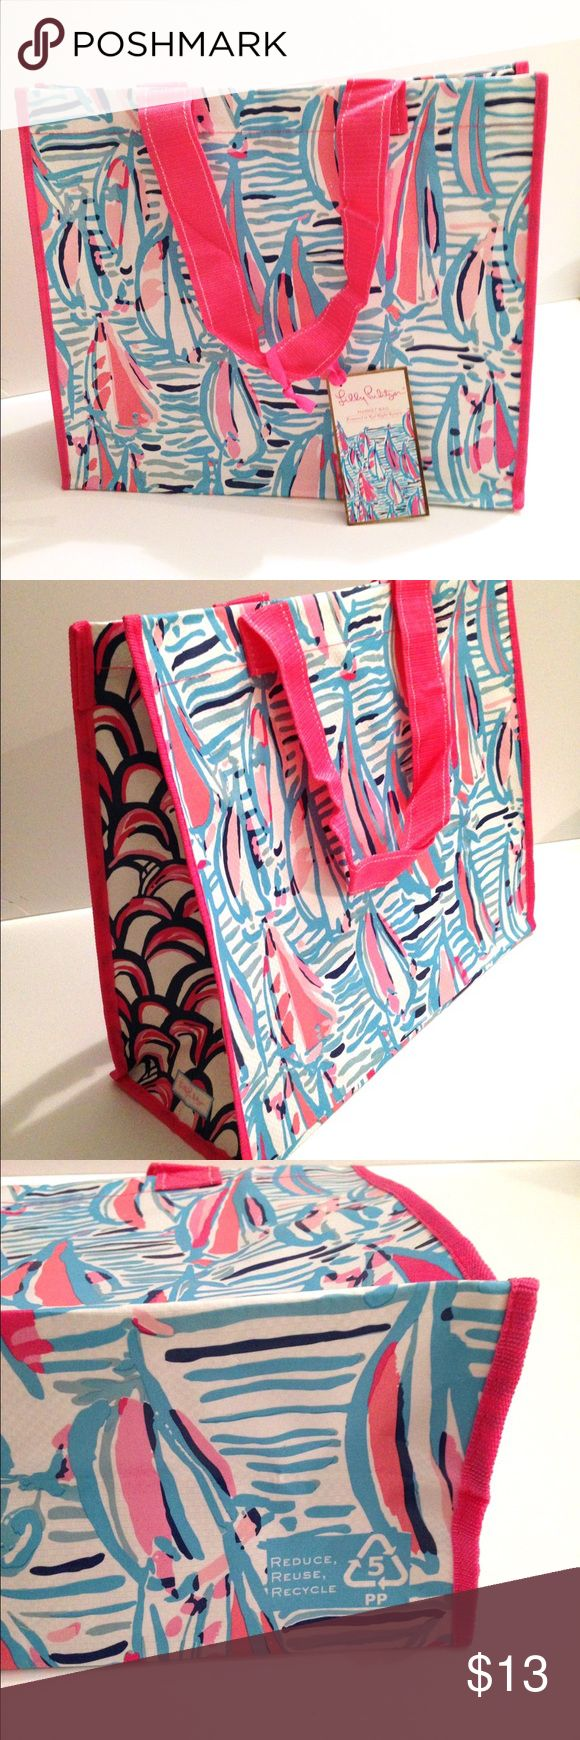 Lilly Pulitzer Red Right Return Market Bag Be eco friendly with this adorable recyclable bag. Perfect for taking to the grocery store, or to any store that charges for plastic bags. Including the straps the height of the bag is 17 inches. The heights of the bag itself is 14 1/2 inches. The depth is 7 5/8 inches. The material is laminated woven polypropylene, very strong and sturdy material. Price is firm. Lilly Pulitzer Bags Totes